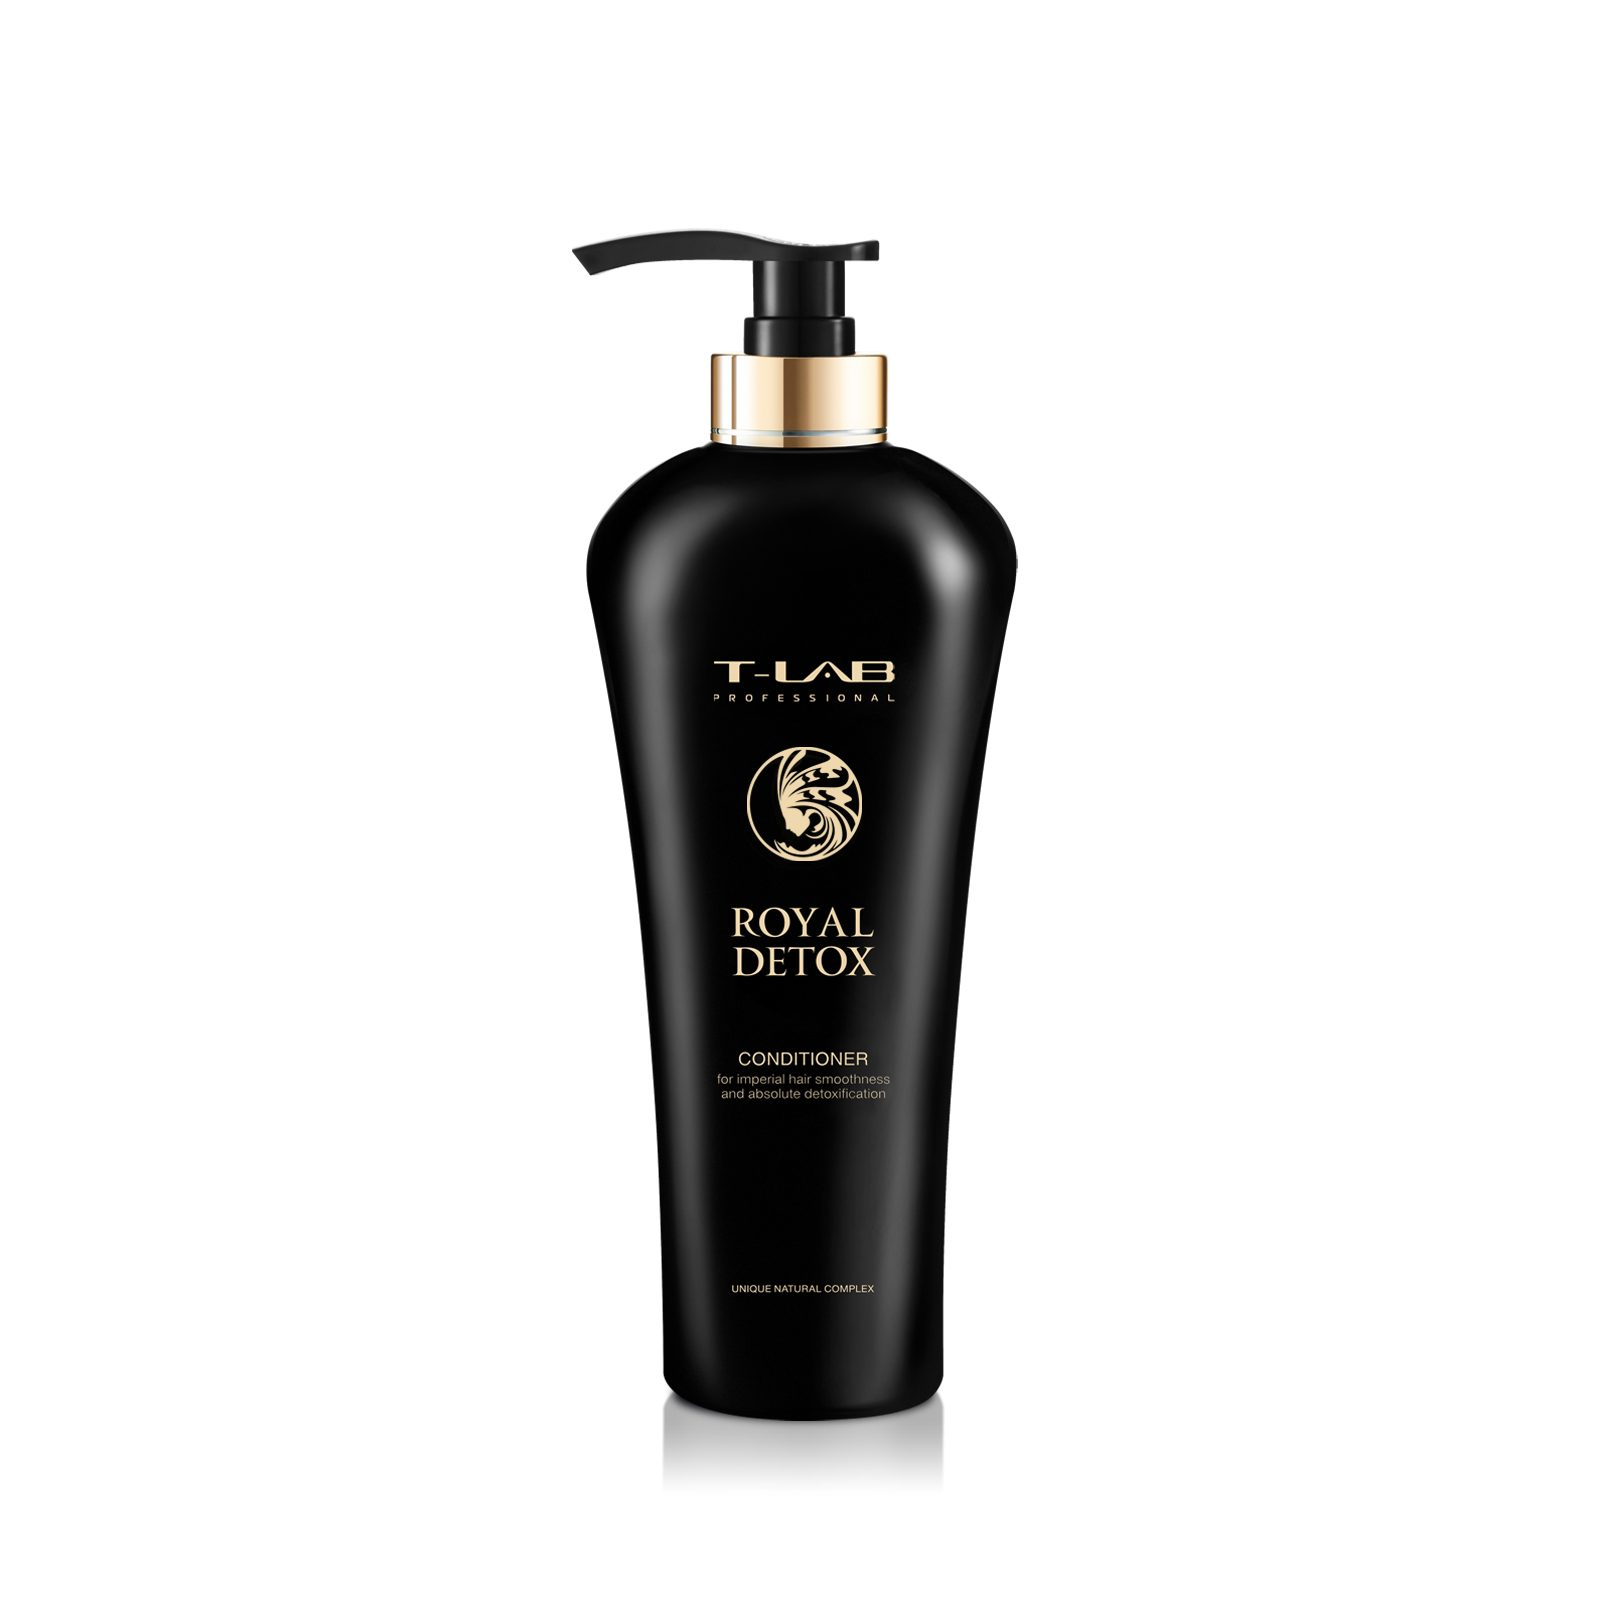 ROYAL DETOX CONDITIONER 750 ml